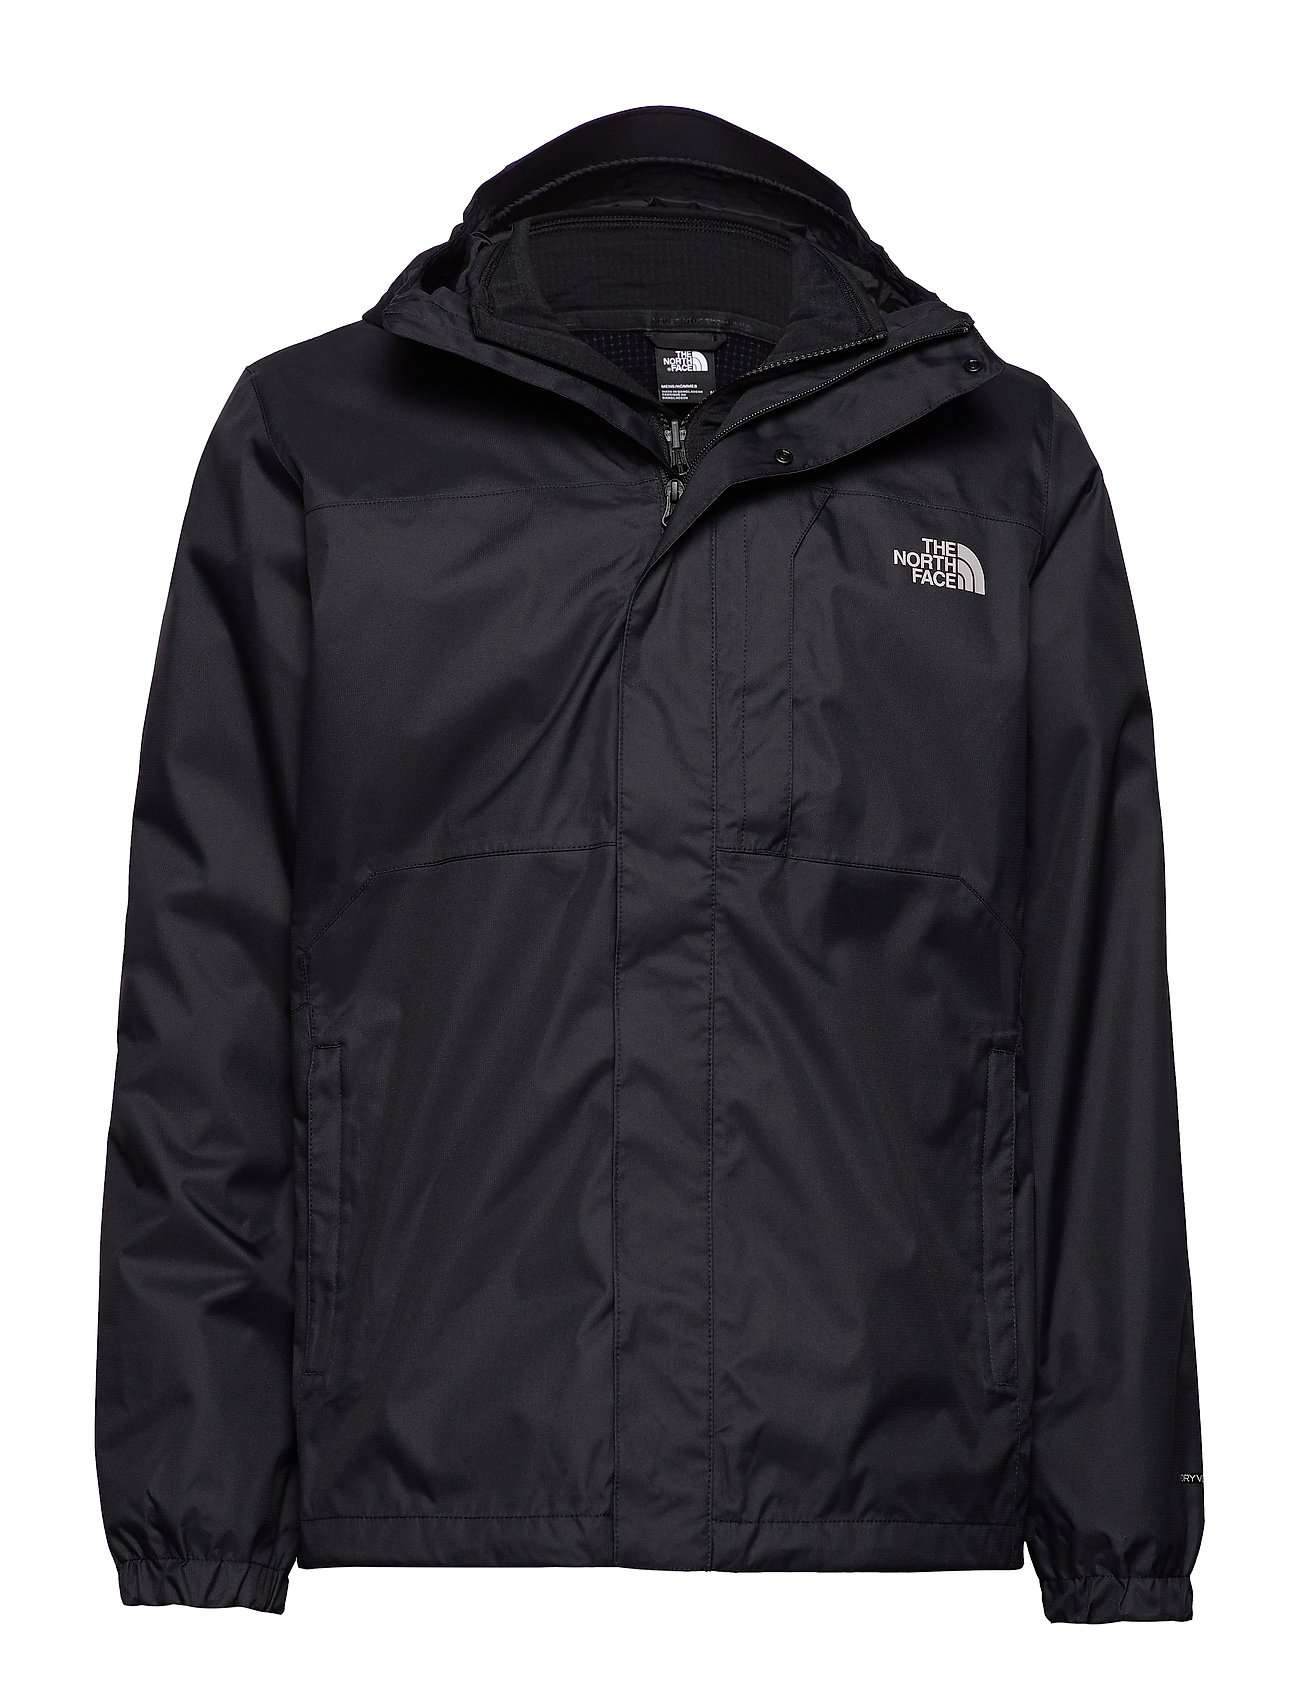 The North Face M QUEST TRICLIMATE J - TNF BLACK